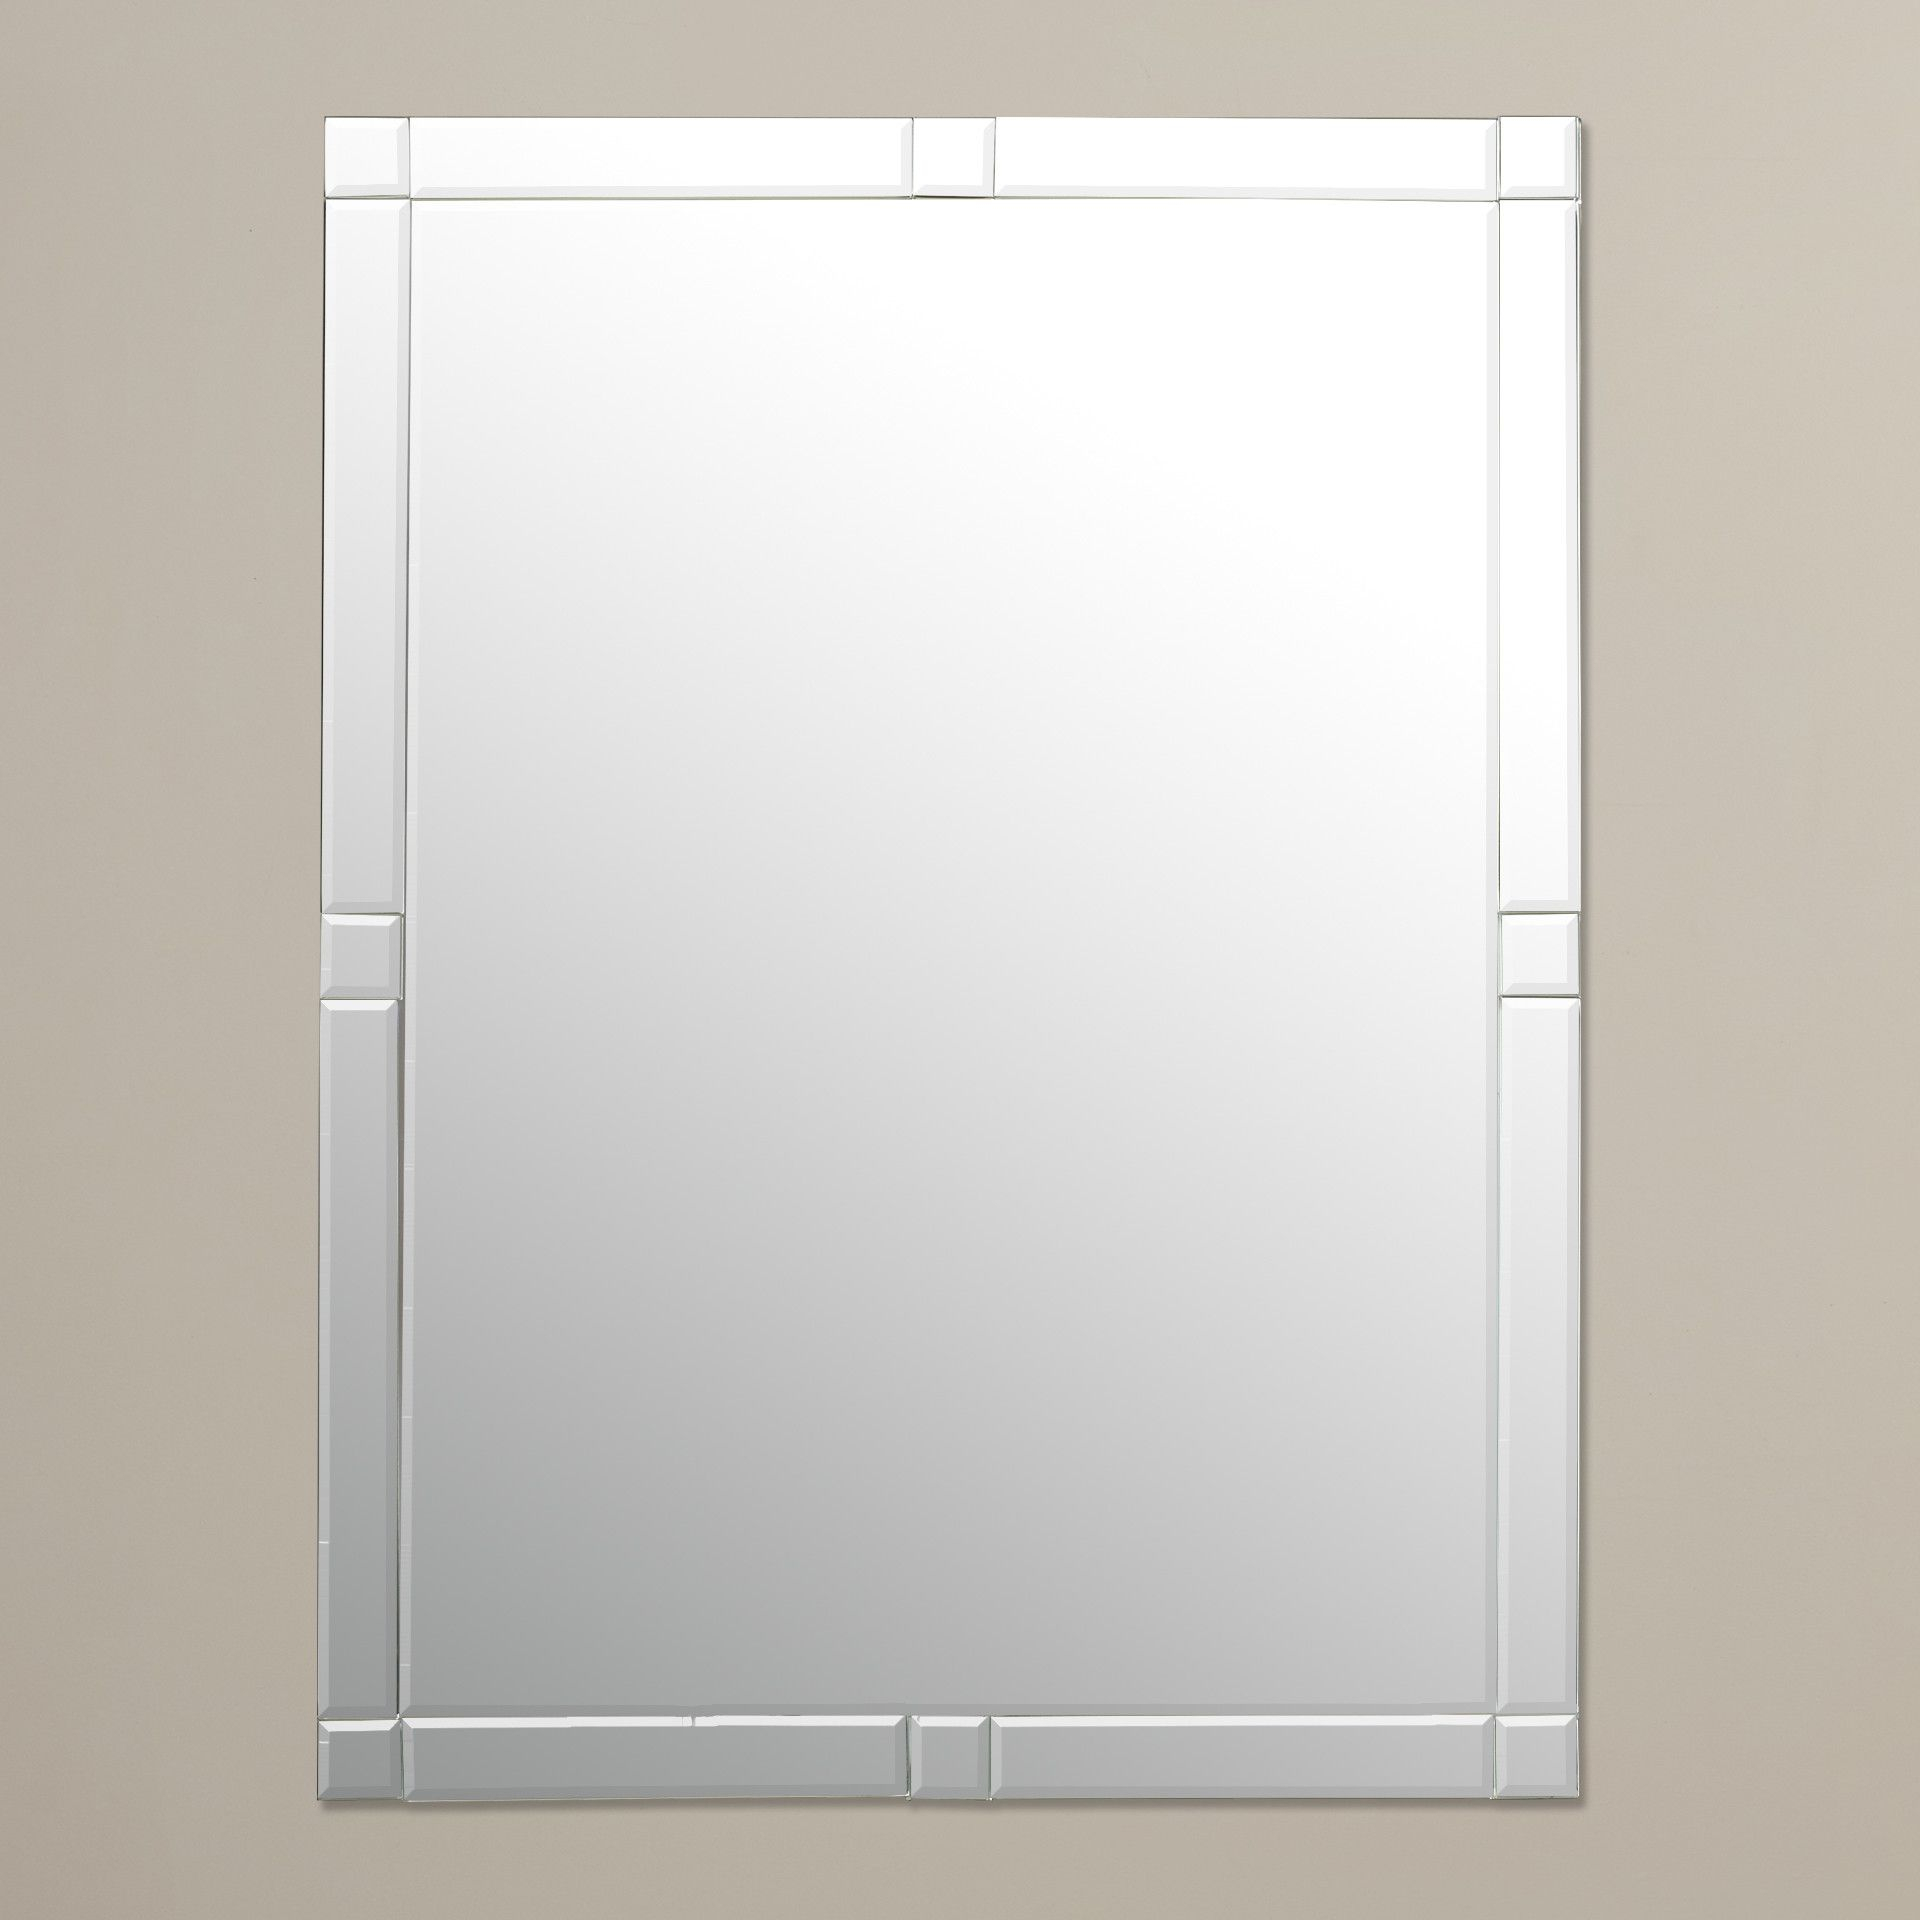 Frameless Wall Mirror | Leahy Home | Vanity Wall Mirror For Logan Frameless Wall Mirrors (View 8 of 20)